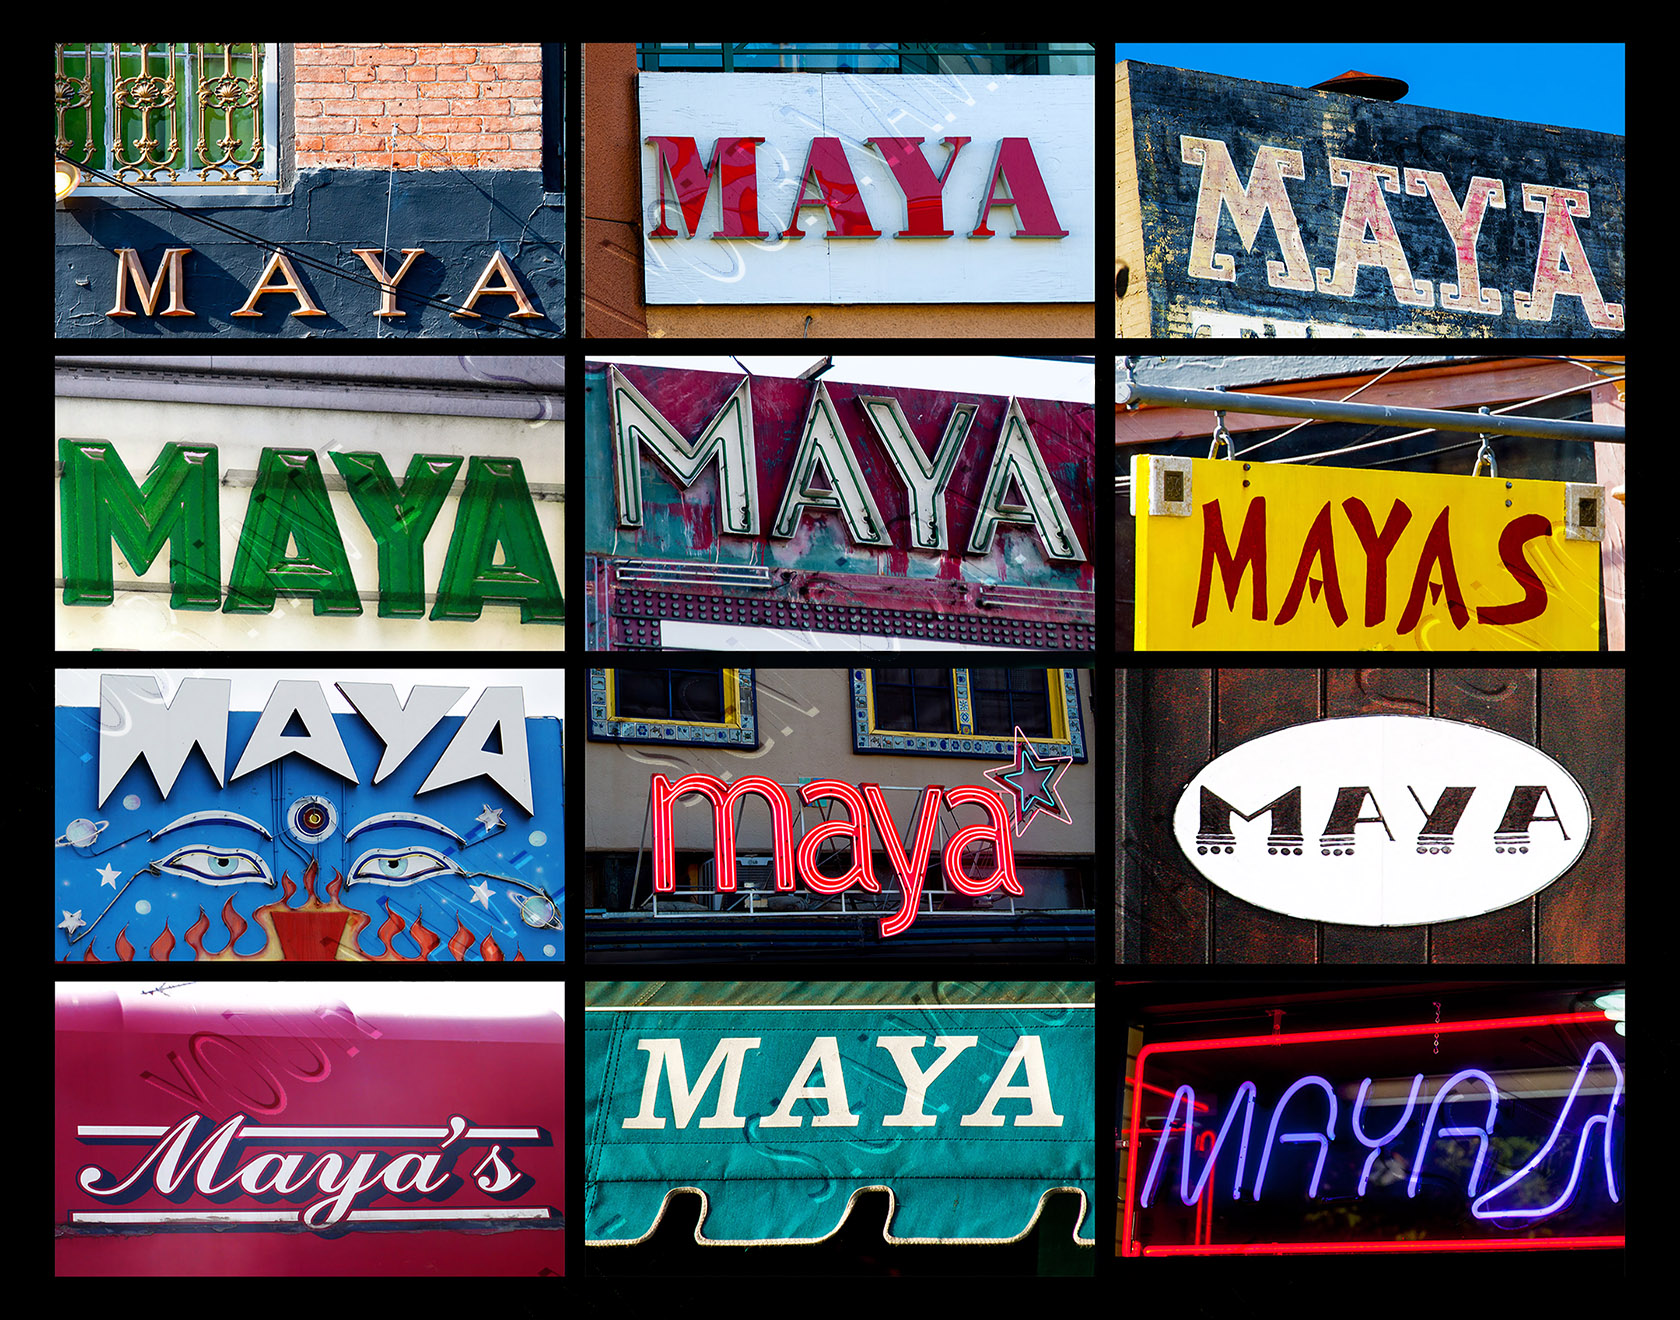 https://www.etsy.com/listing/221999455/personalized-poster-featuring-maya?ref=shop_home_active_1&ga_search_query=maya